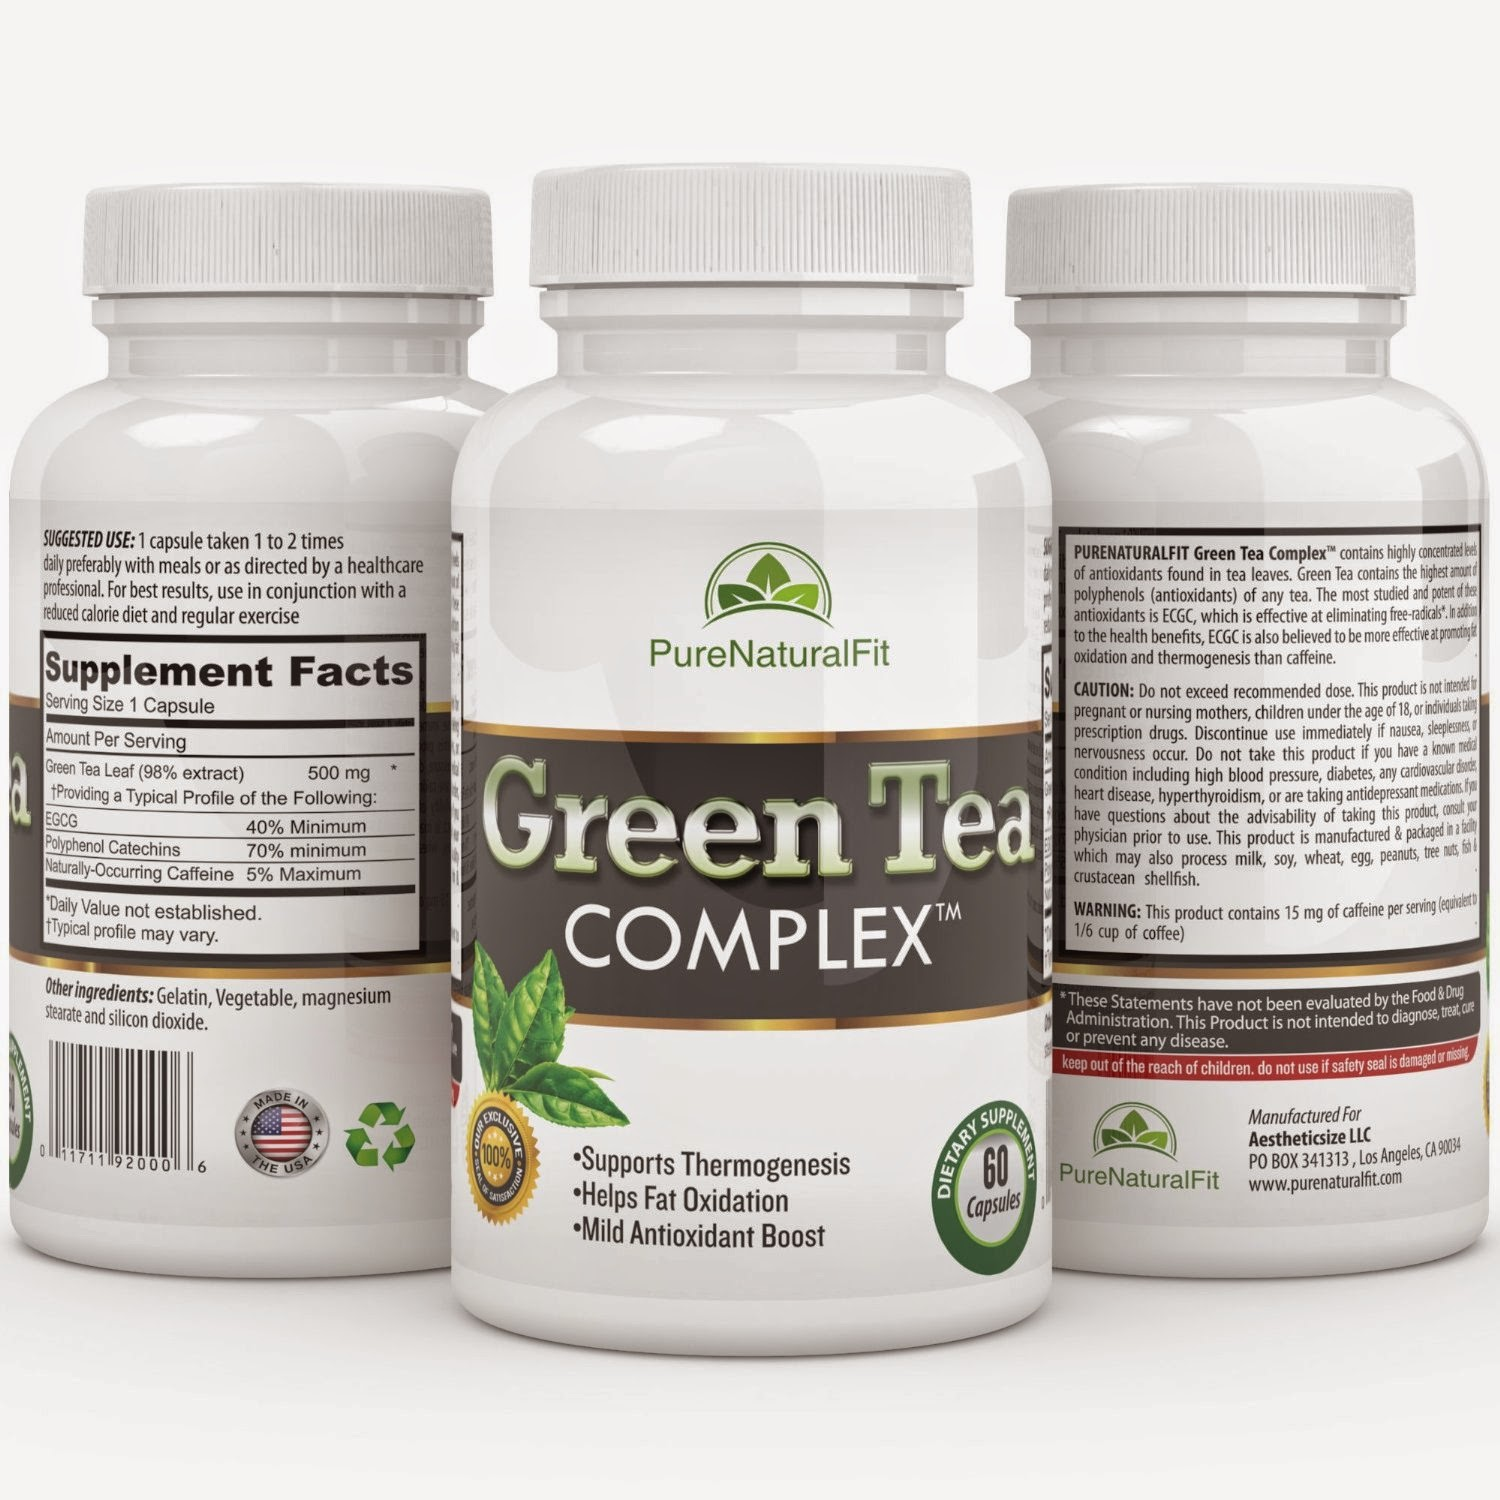 green tea complex review - ramblings of a coffee addicted writer